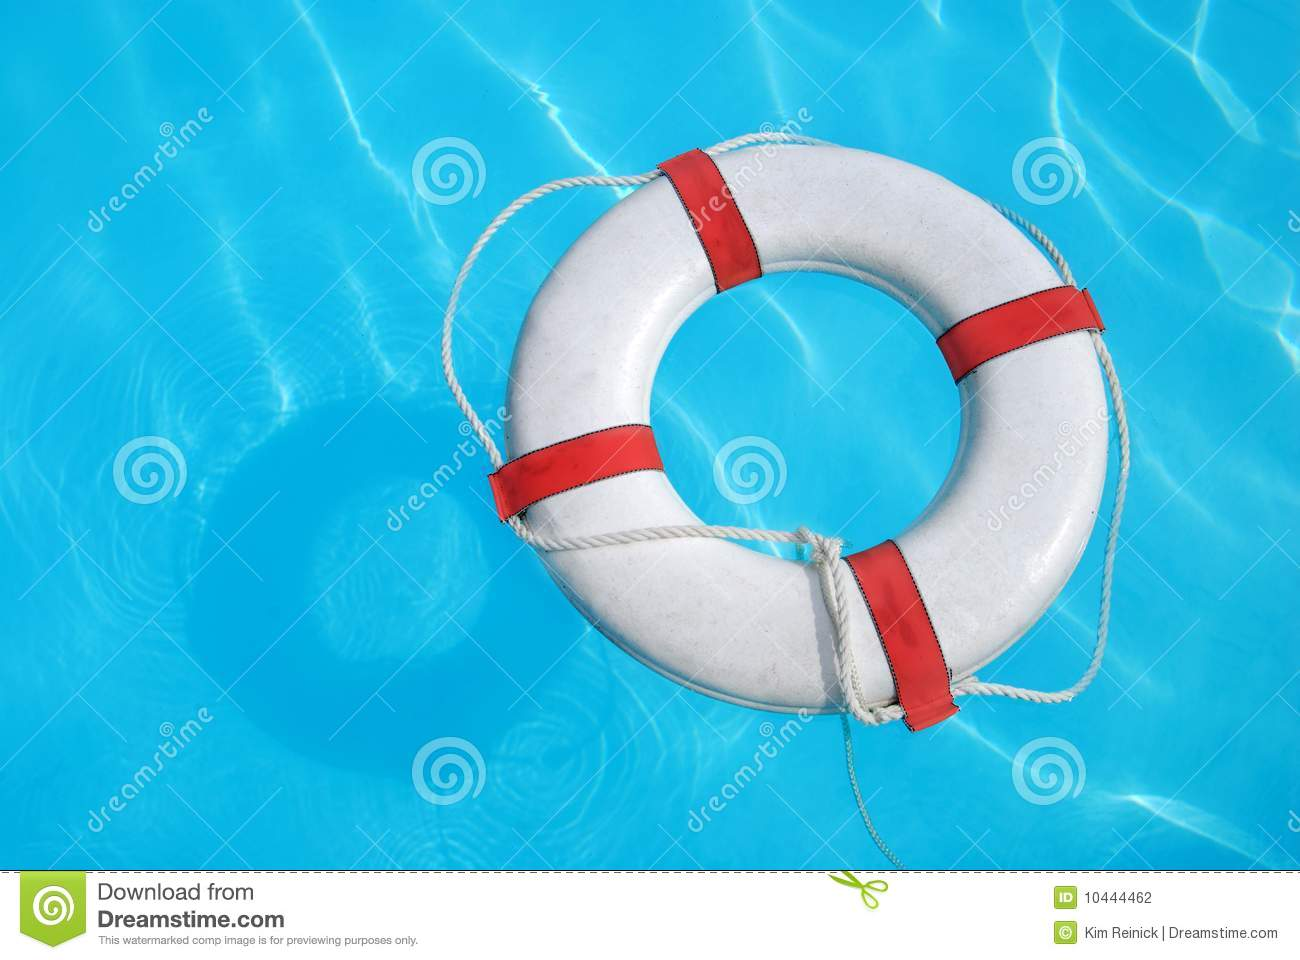 straps b buoy with flotation uscg approved white ring rings